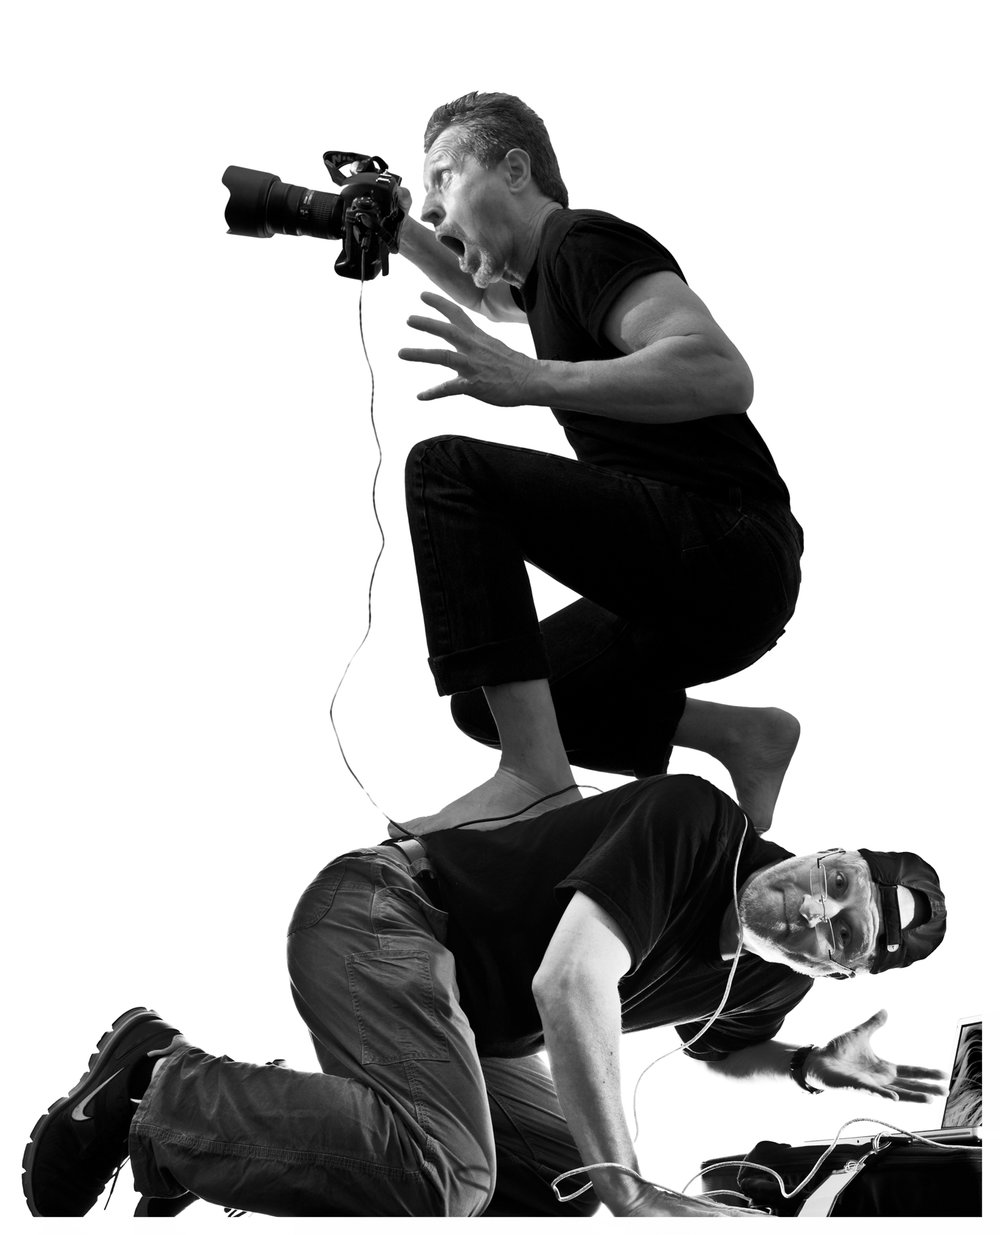 photographers Rob Van Petten and Randall Armor   2010